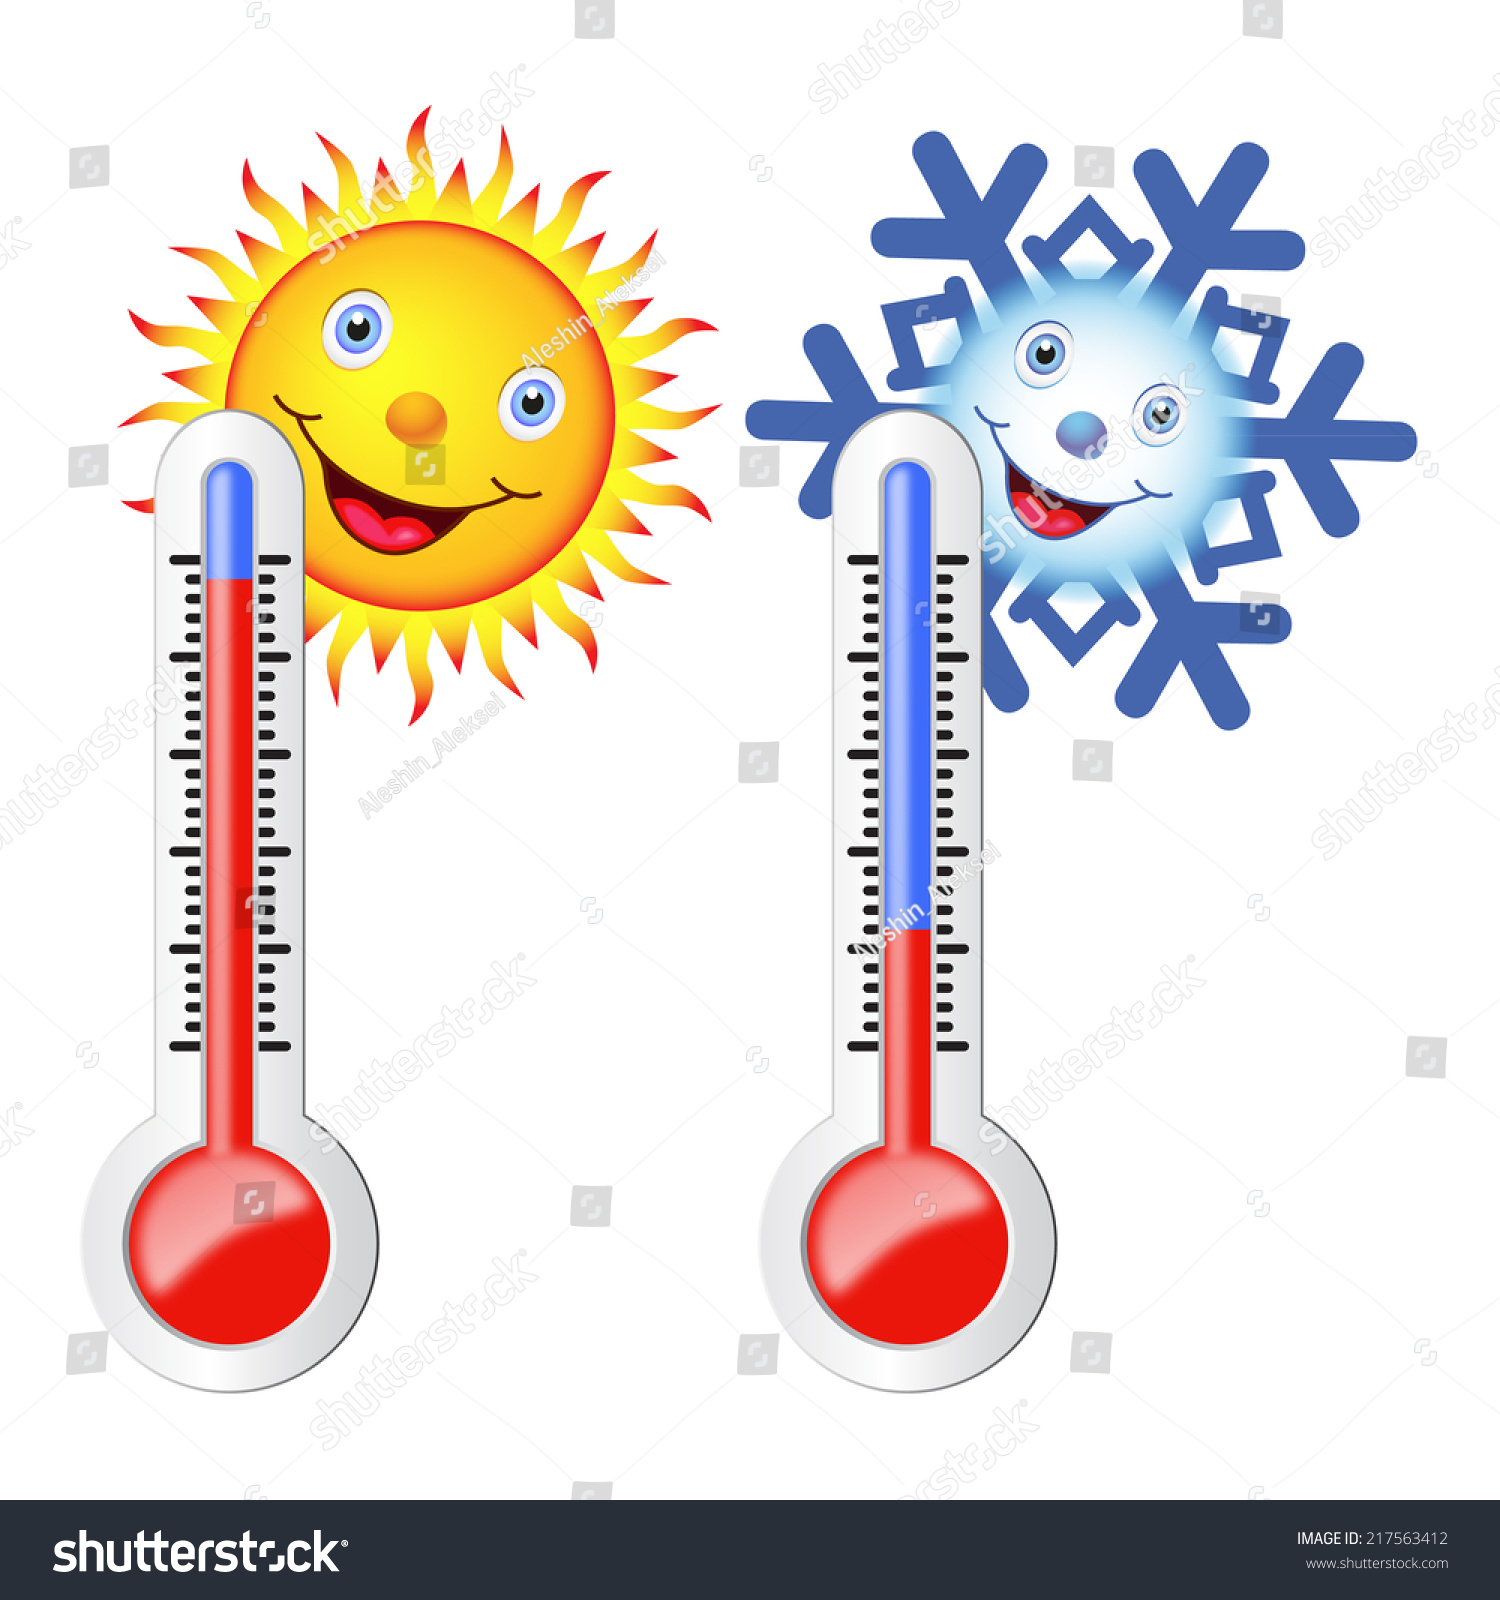 Two Thermometers Sun Snowflake Symbols Hot Stock Vector